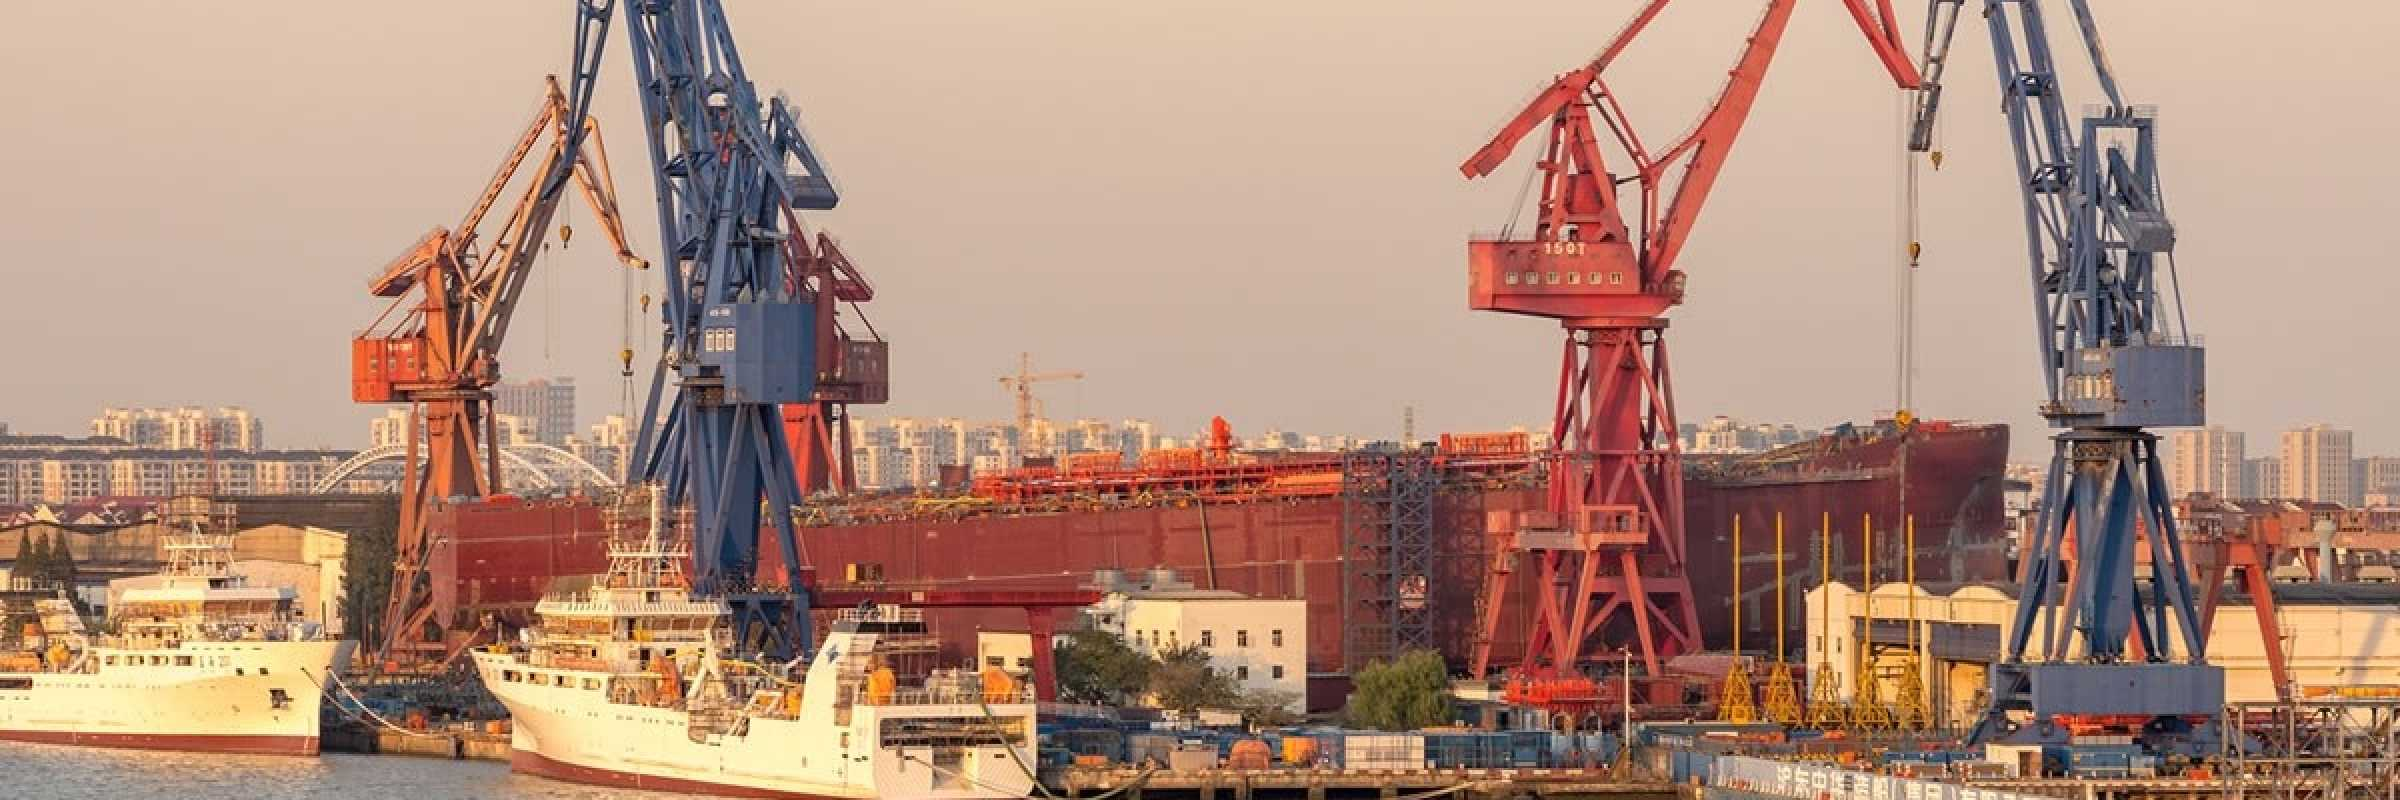 ABS and Dalian shipbuilding collaborate on LNG as fuel innovation